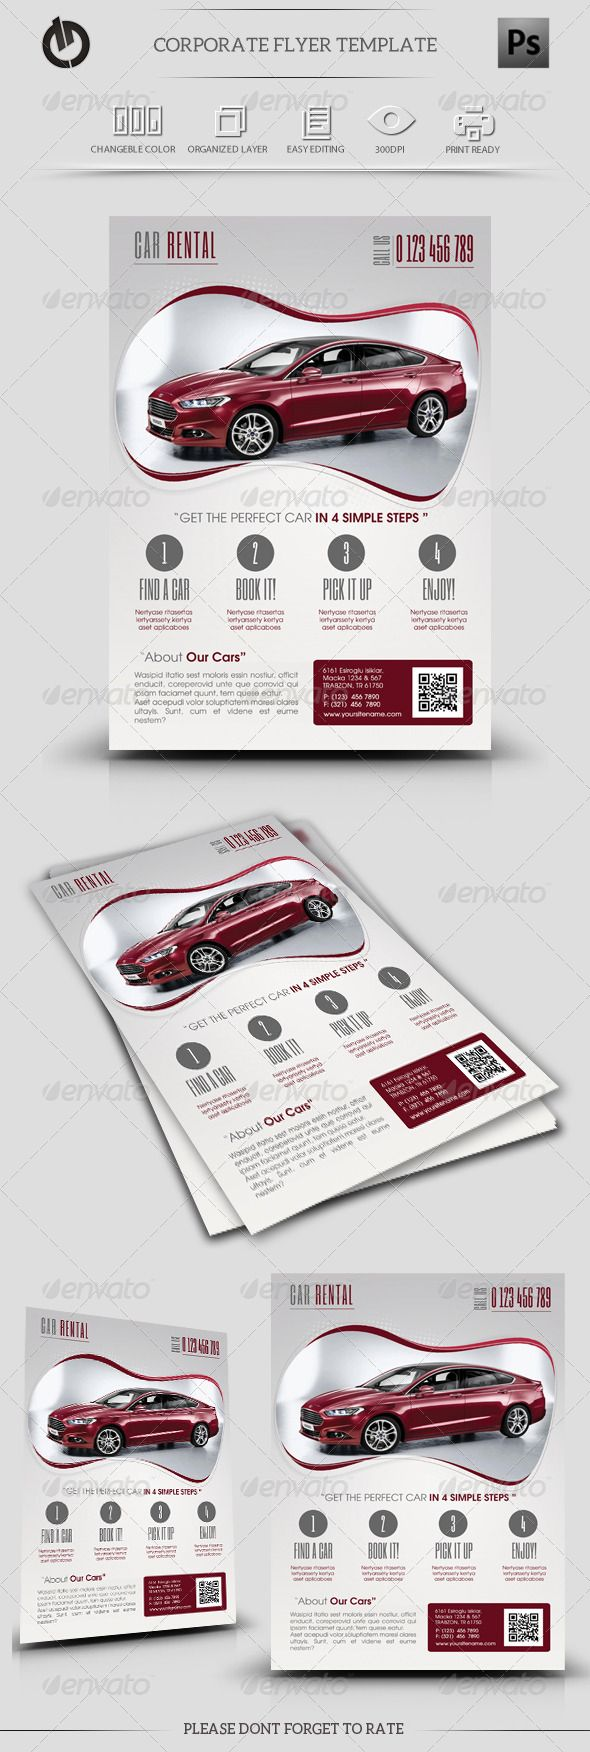 Car Rental Flyer Template - For lease flyer template